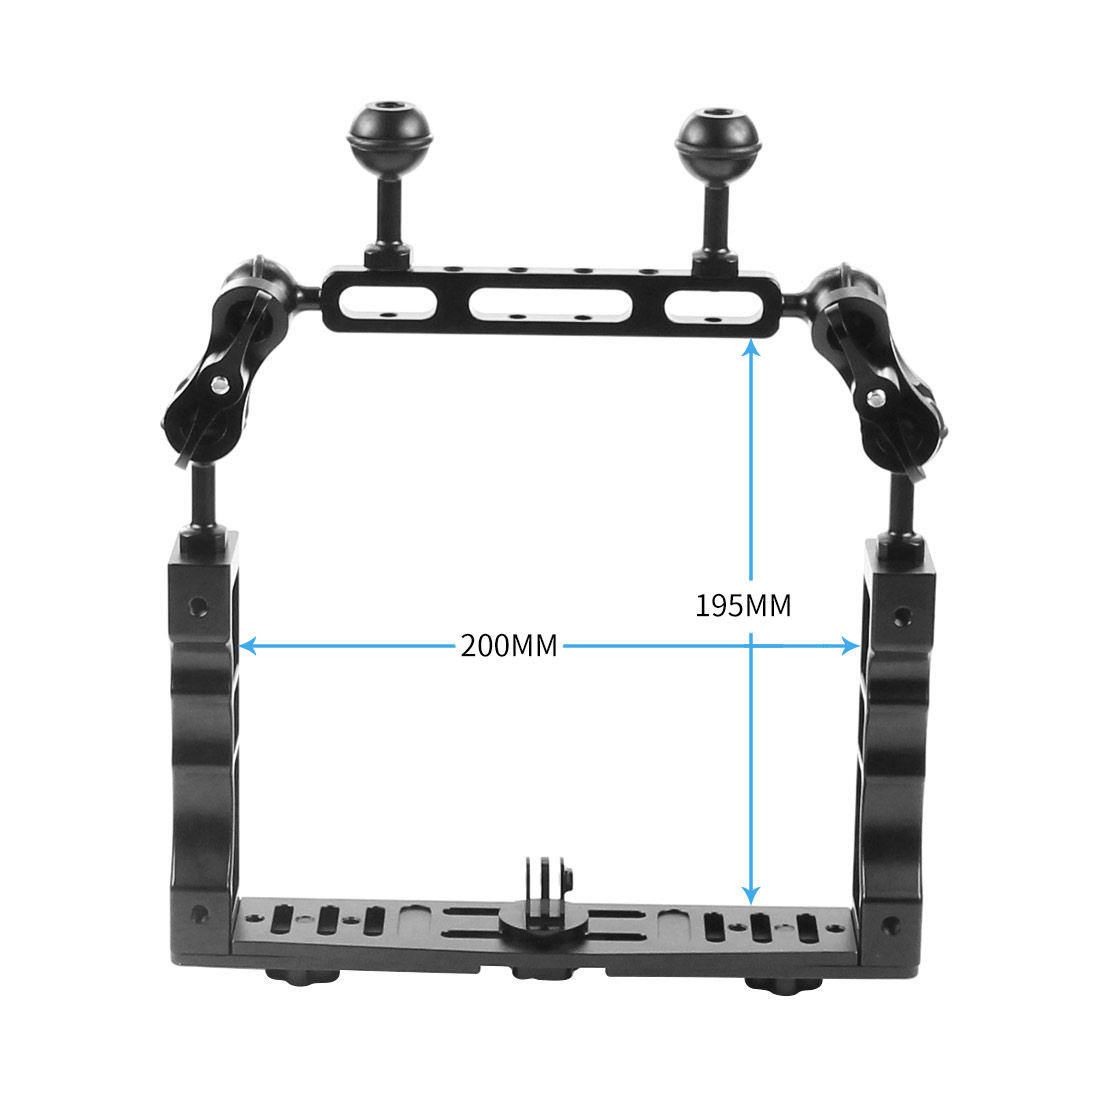 Underwater Tray Housings Arm Kit For Camera Holder Grip Diving Flash Arm Light C+am Accessory Set KF22567-B